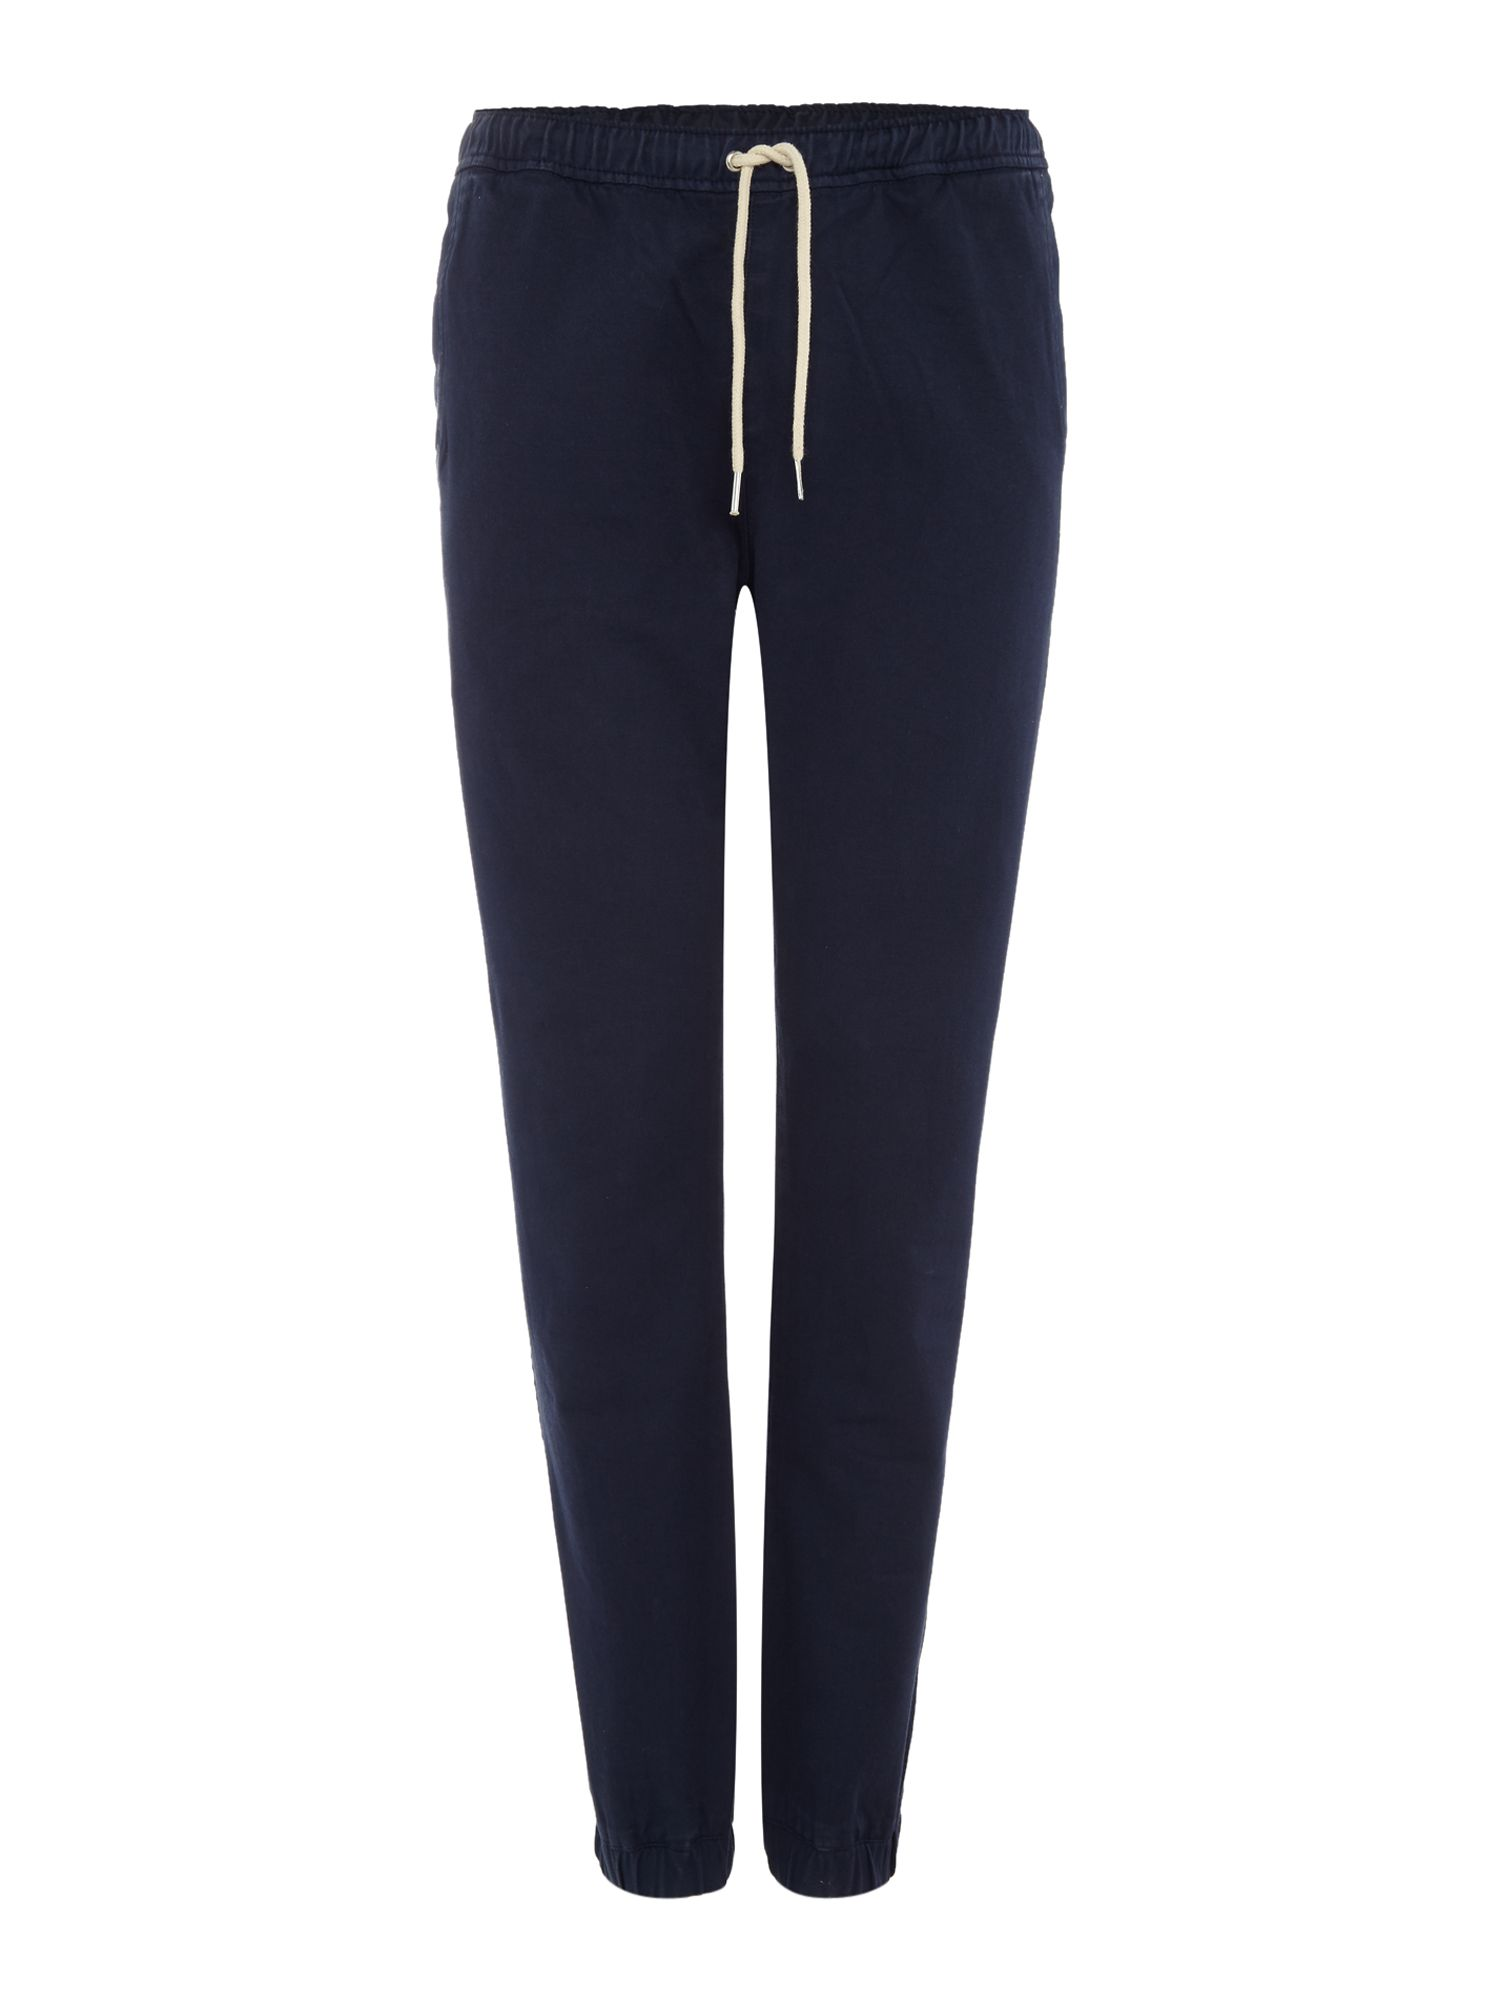 Soulland Men's Soulland Cuffed drawstring tracksuit bottoms, Navy